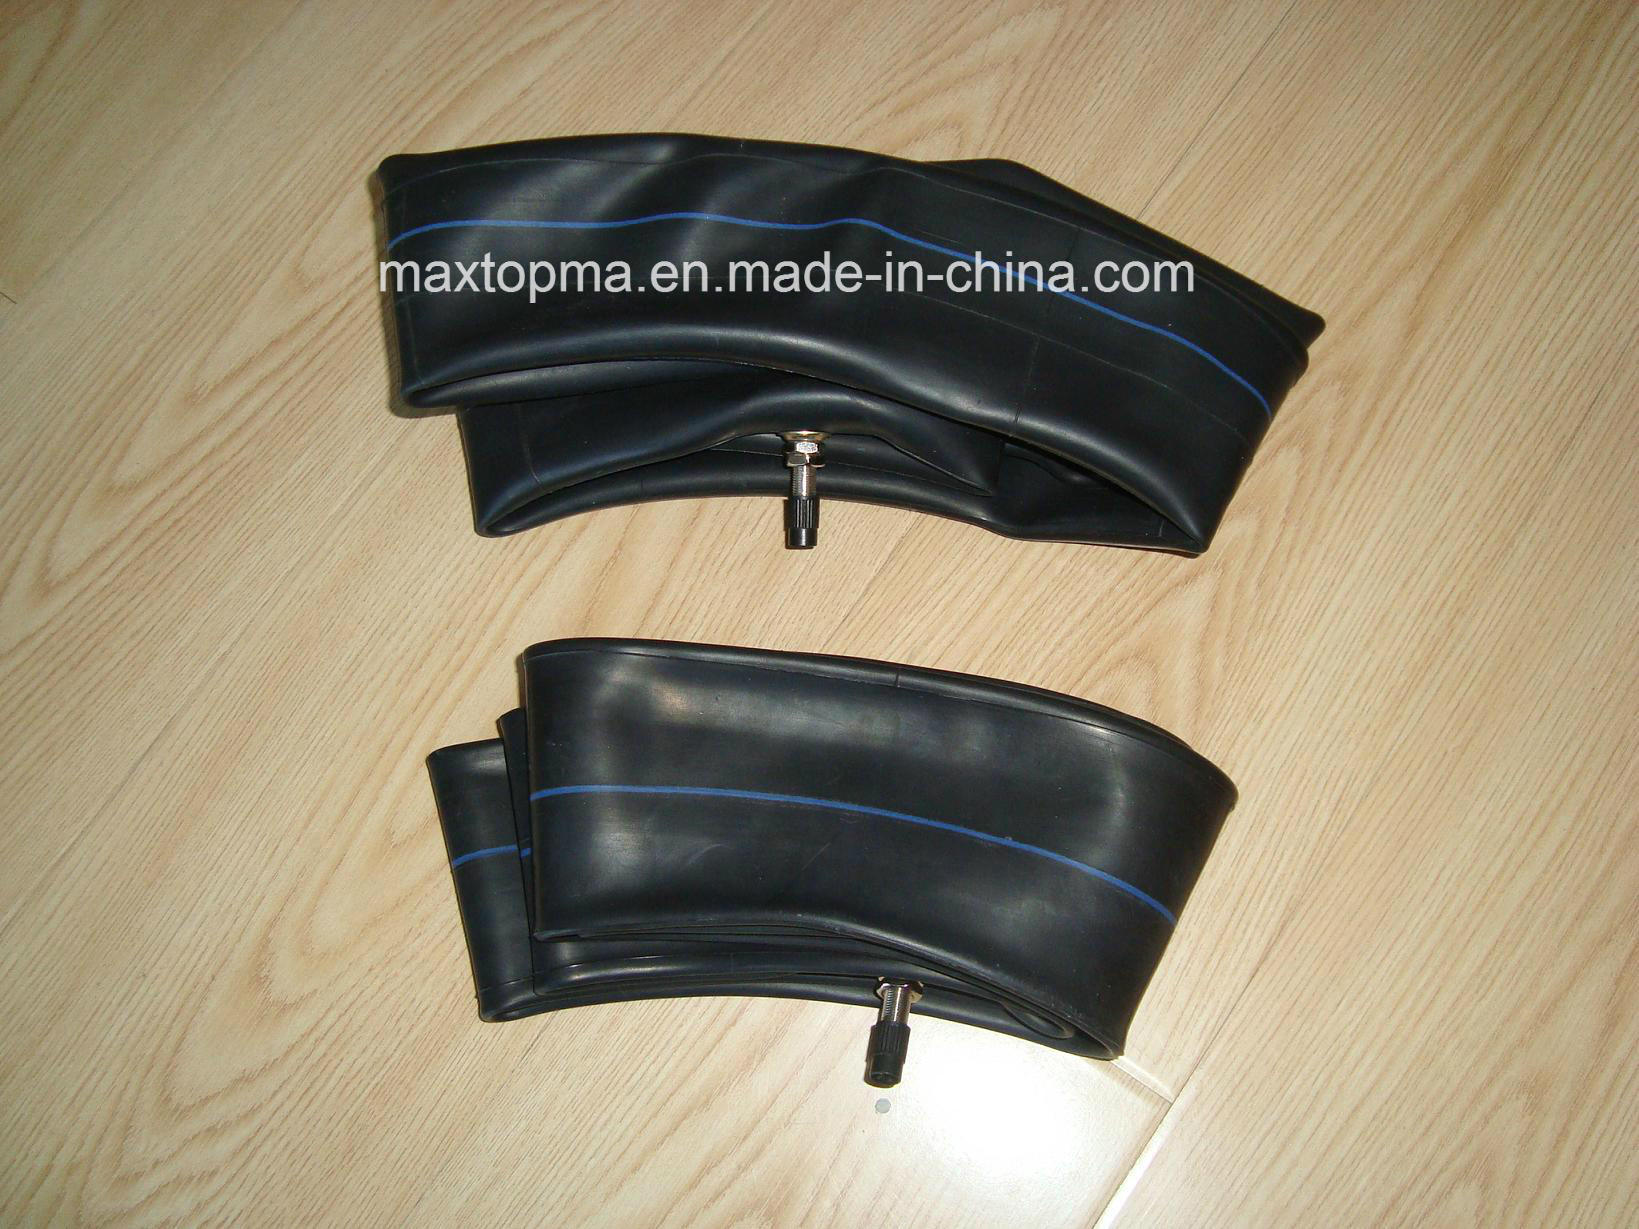 China Quality Butyl Car Truck Motorcycle Bicycle Tyre Inner Tube